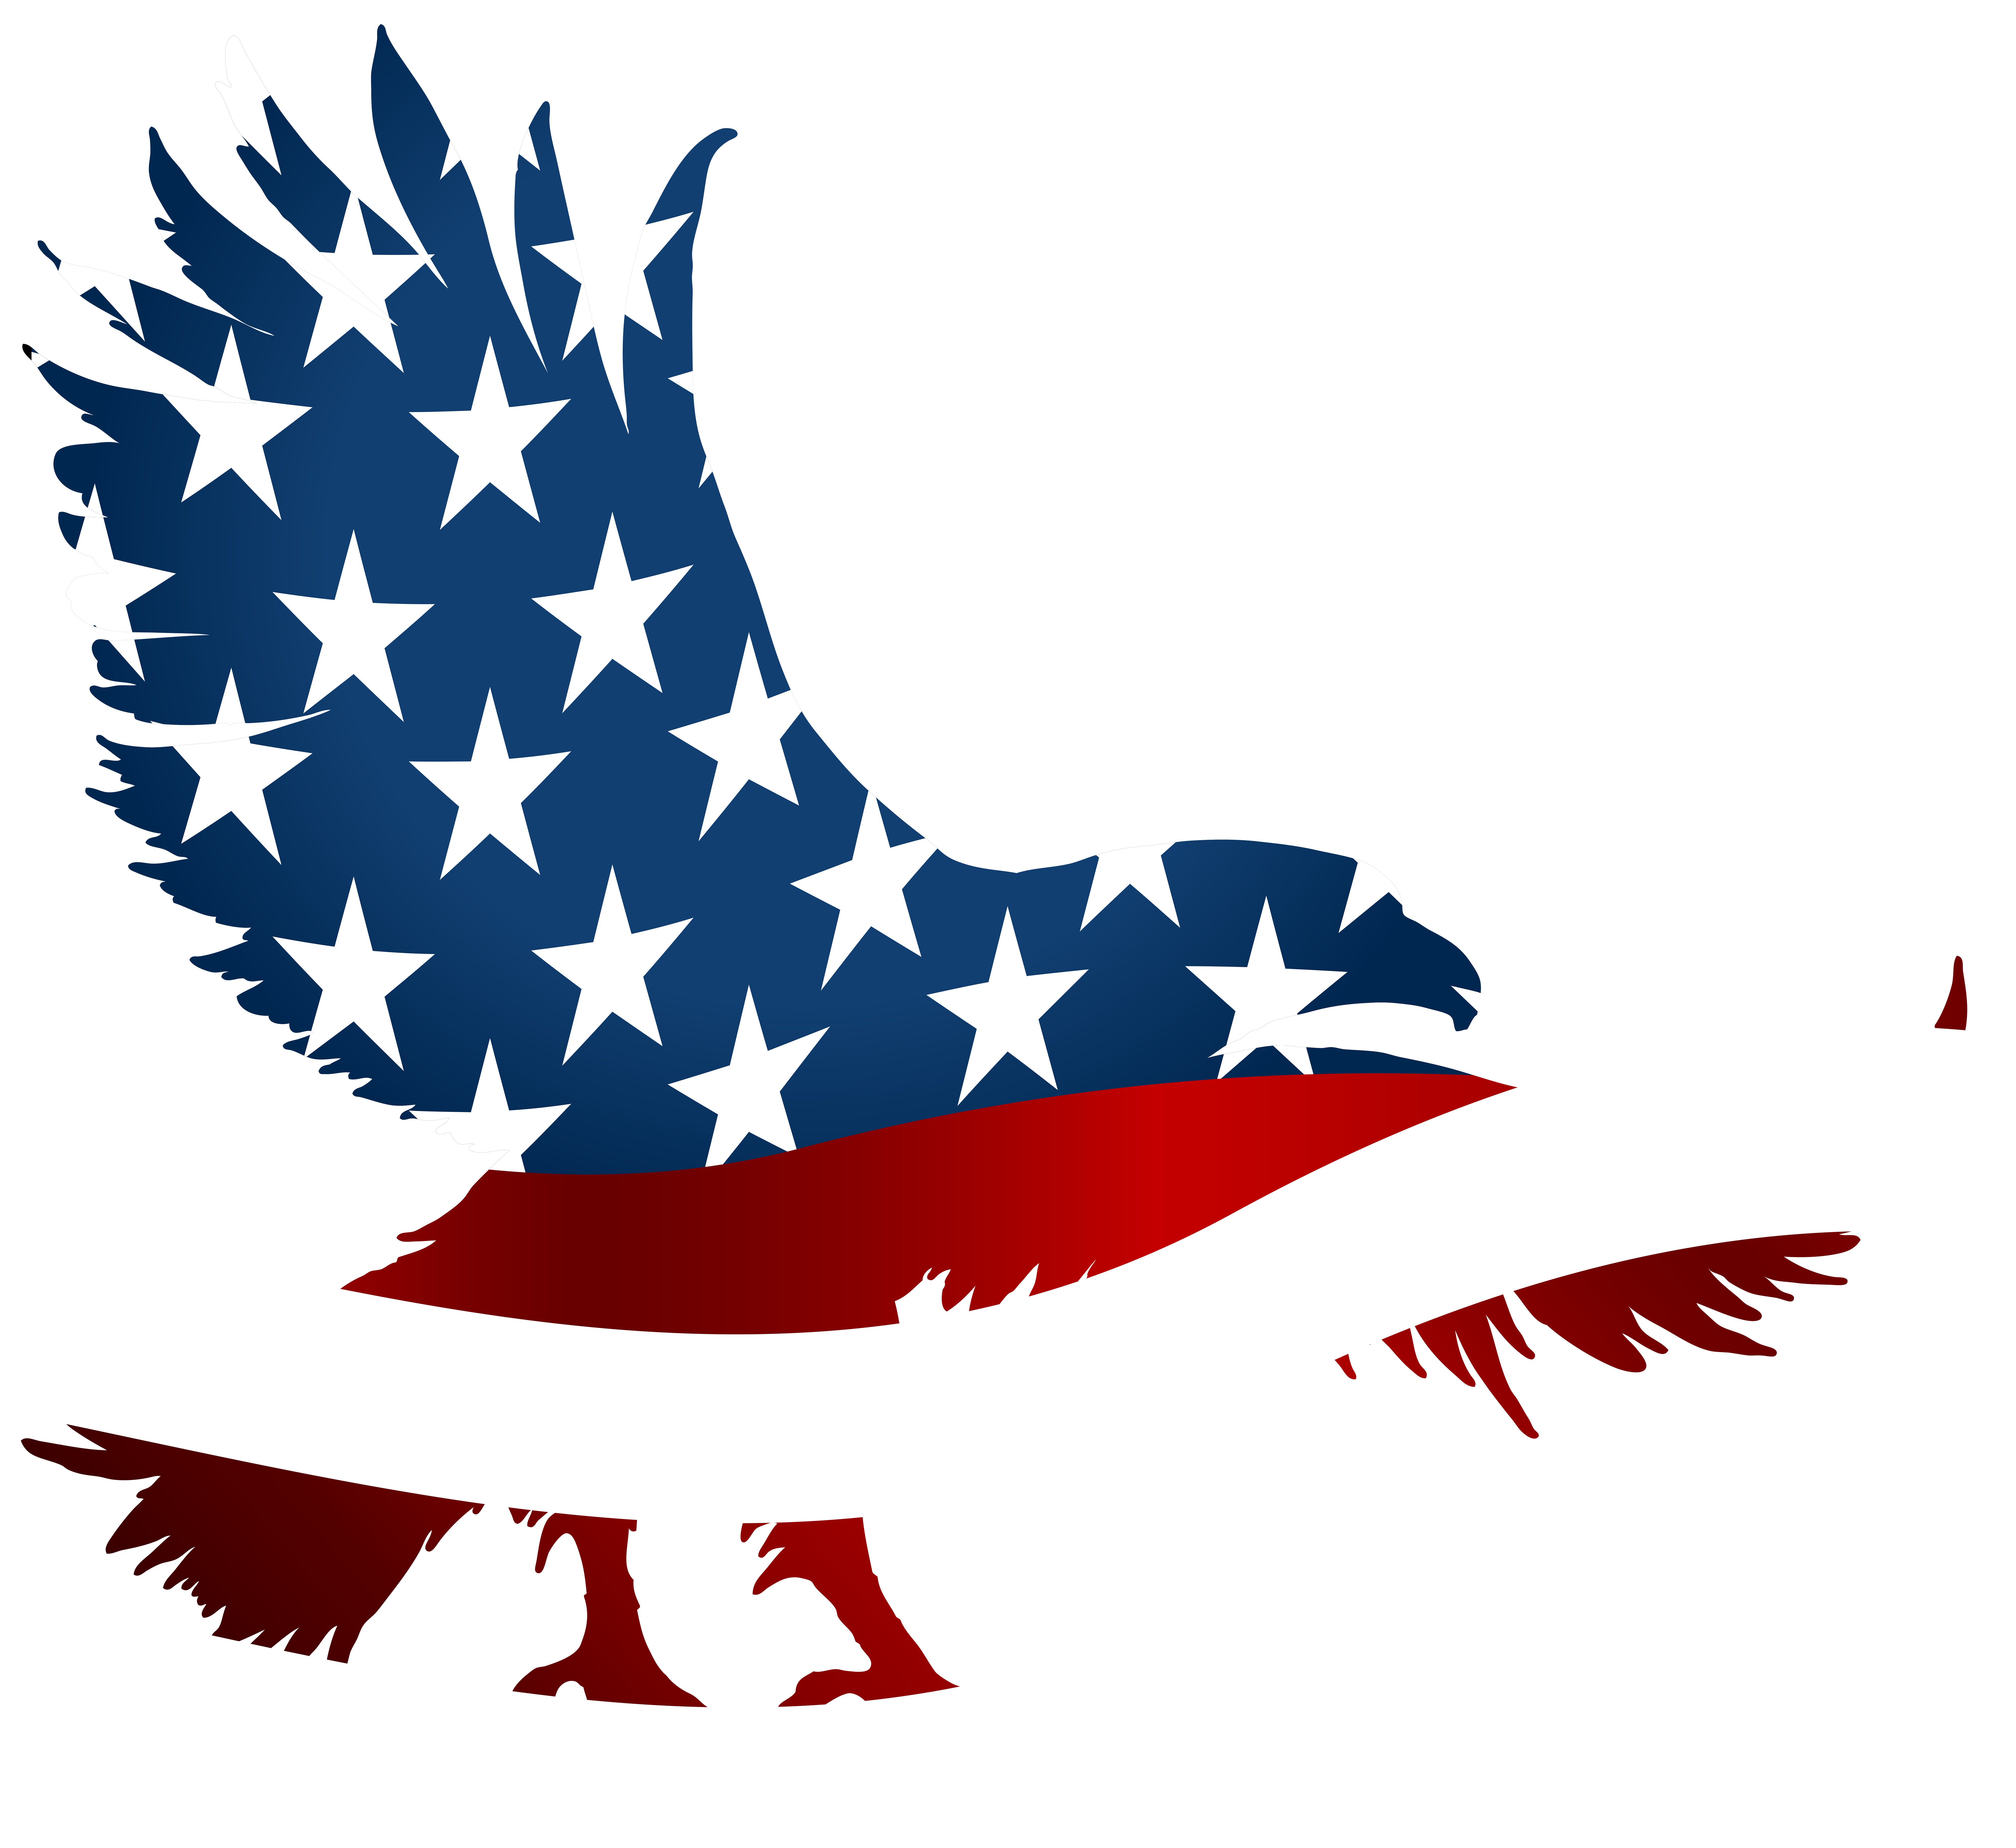 Usa flag transparent png. American eagle clip art